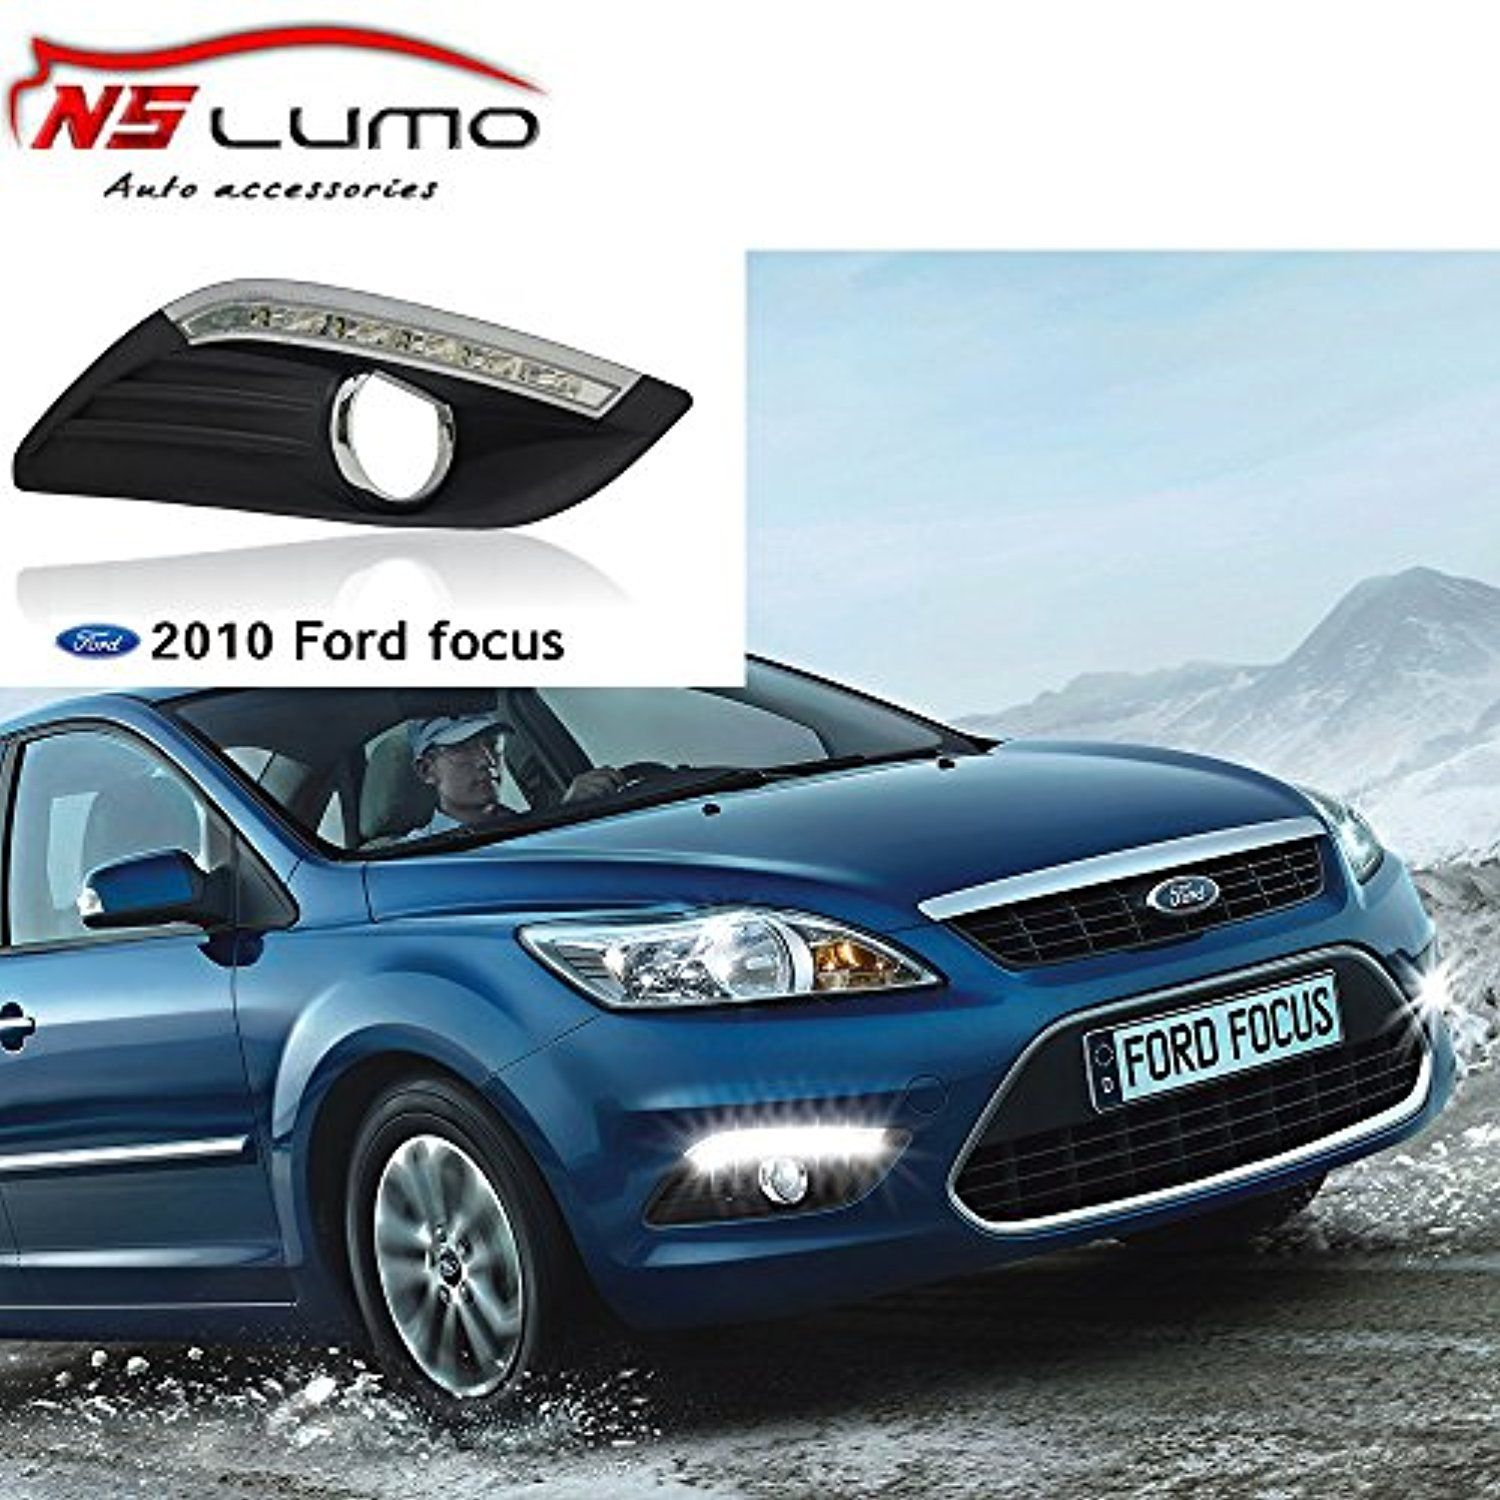 nslumo led fog light daytime running light drl driving lamp for ford focus sedan 2009 2011 high configuration awesome products selected by anna  [ 1500 x 1500 Pixel ]